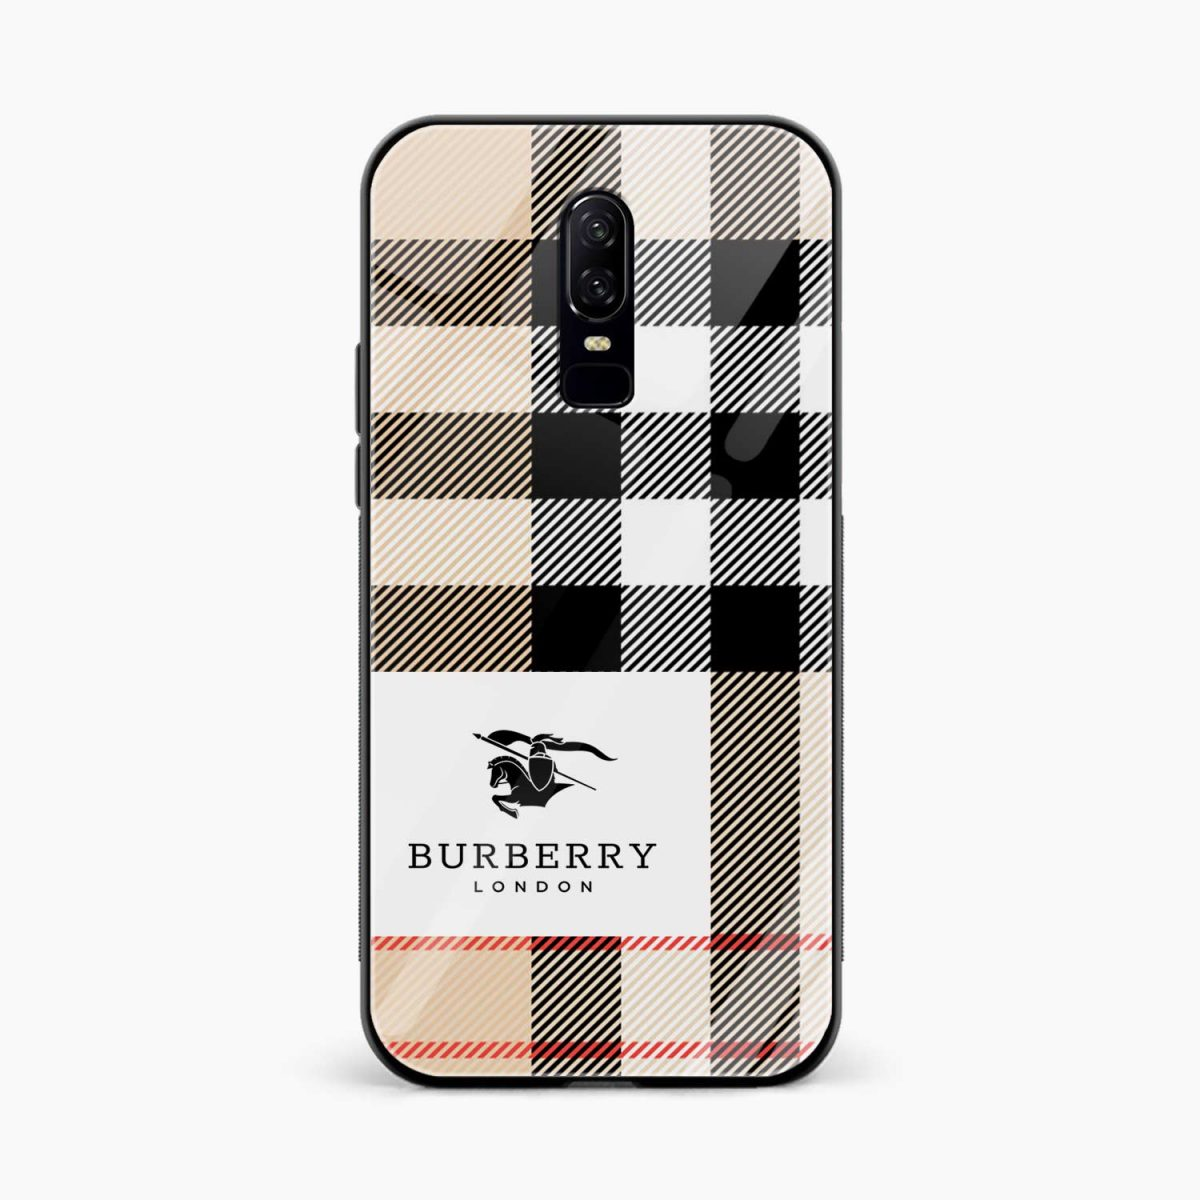 burberry cross lines pattern front view oneplus 6 back cover